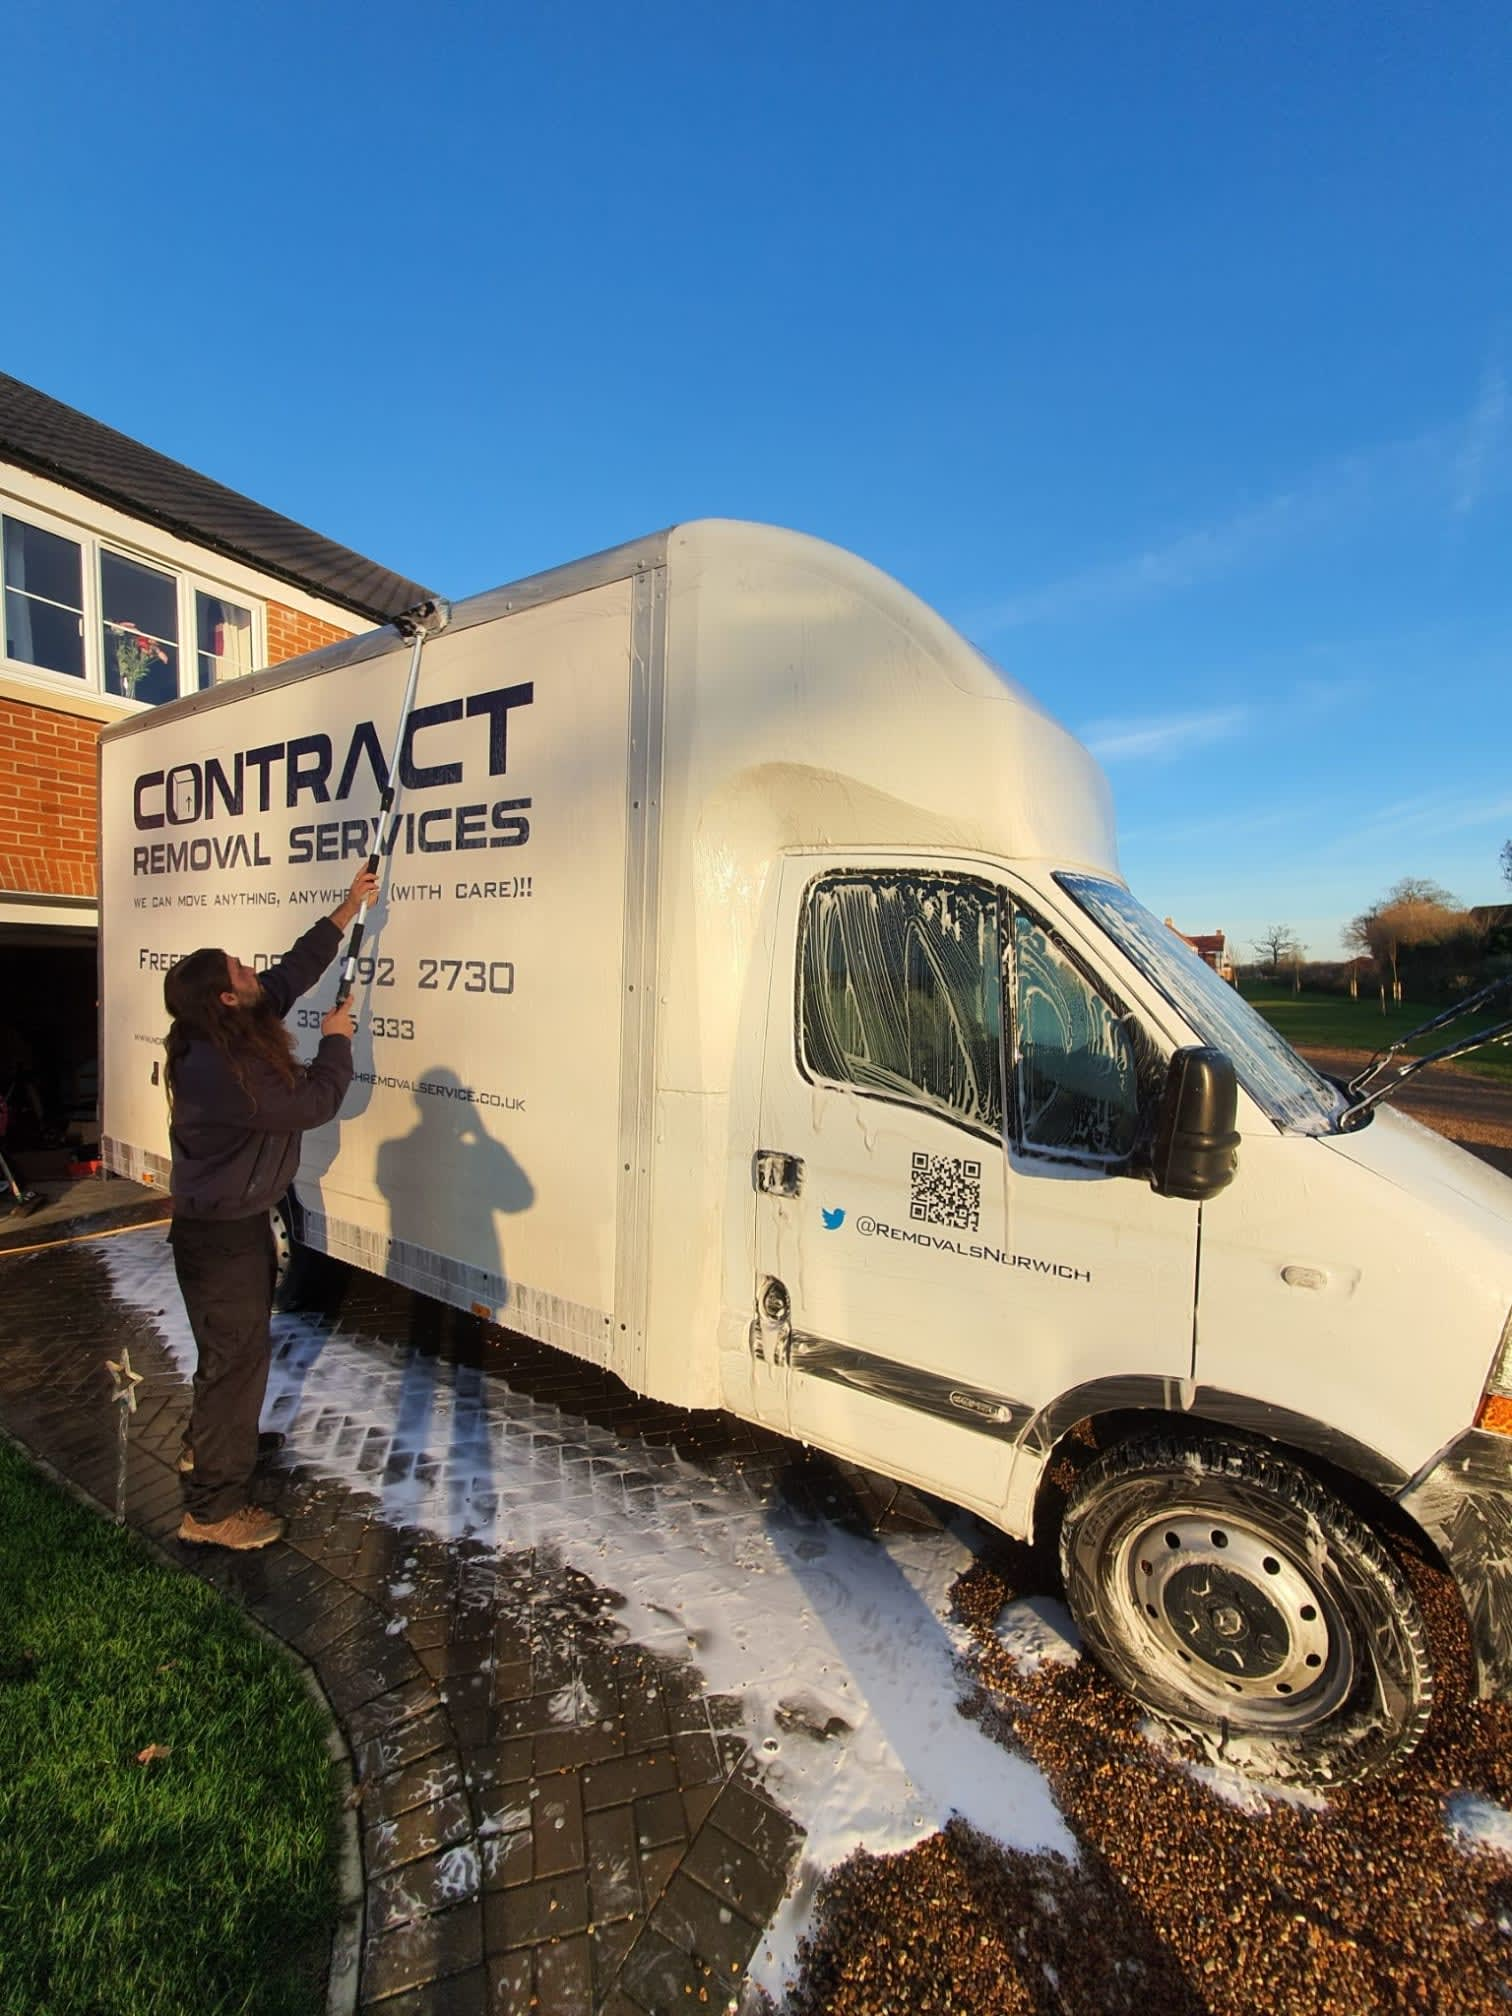 cleaning-the-van-ready-for-the-next-job-shiny-shiny-https-t-co-7qtqrc1iss